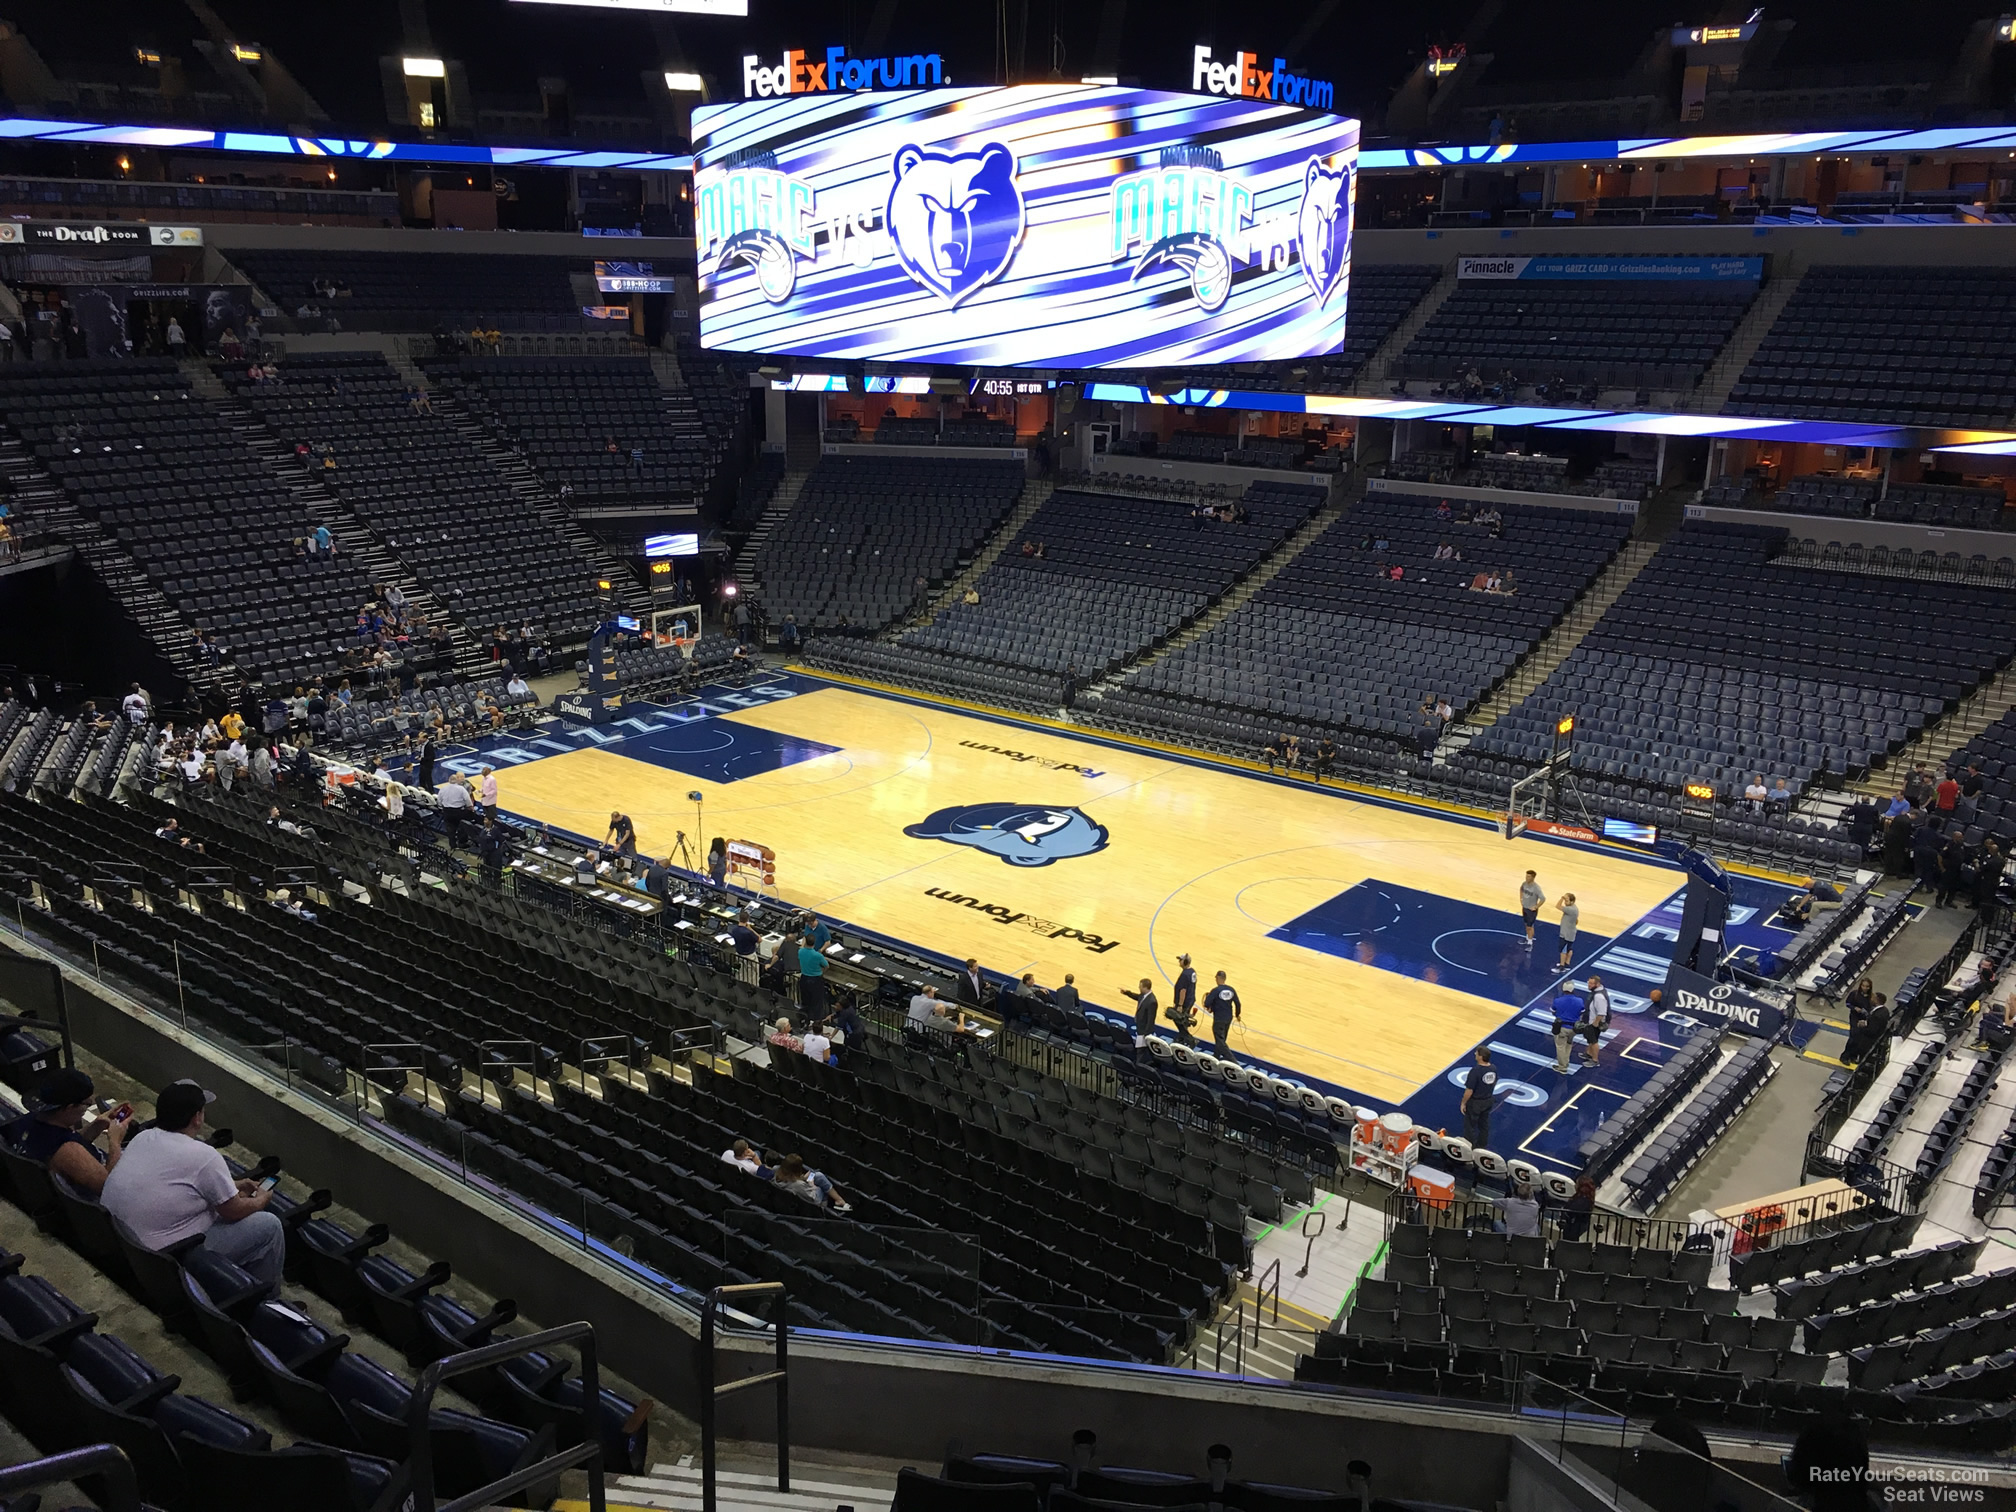 Seat View for FedEx Forum Section P7, Row H